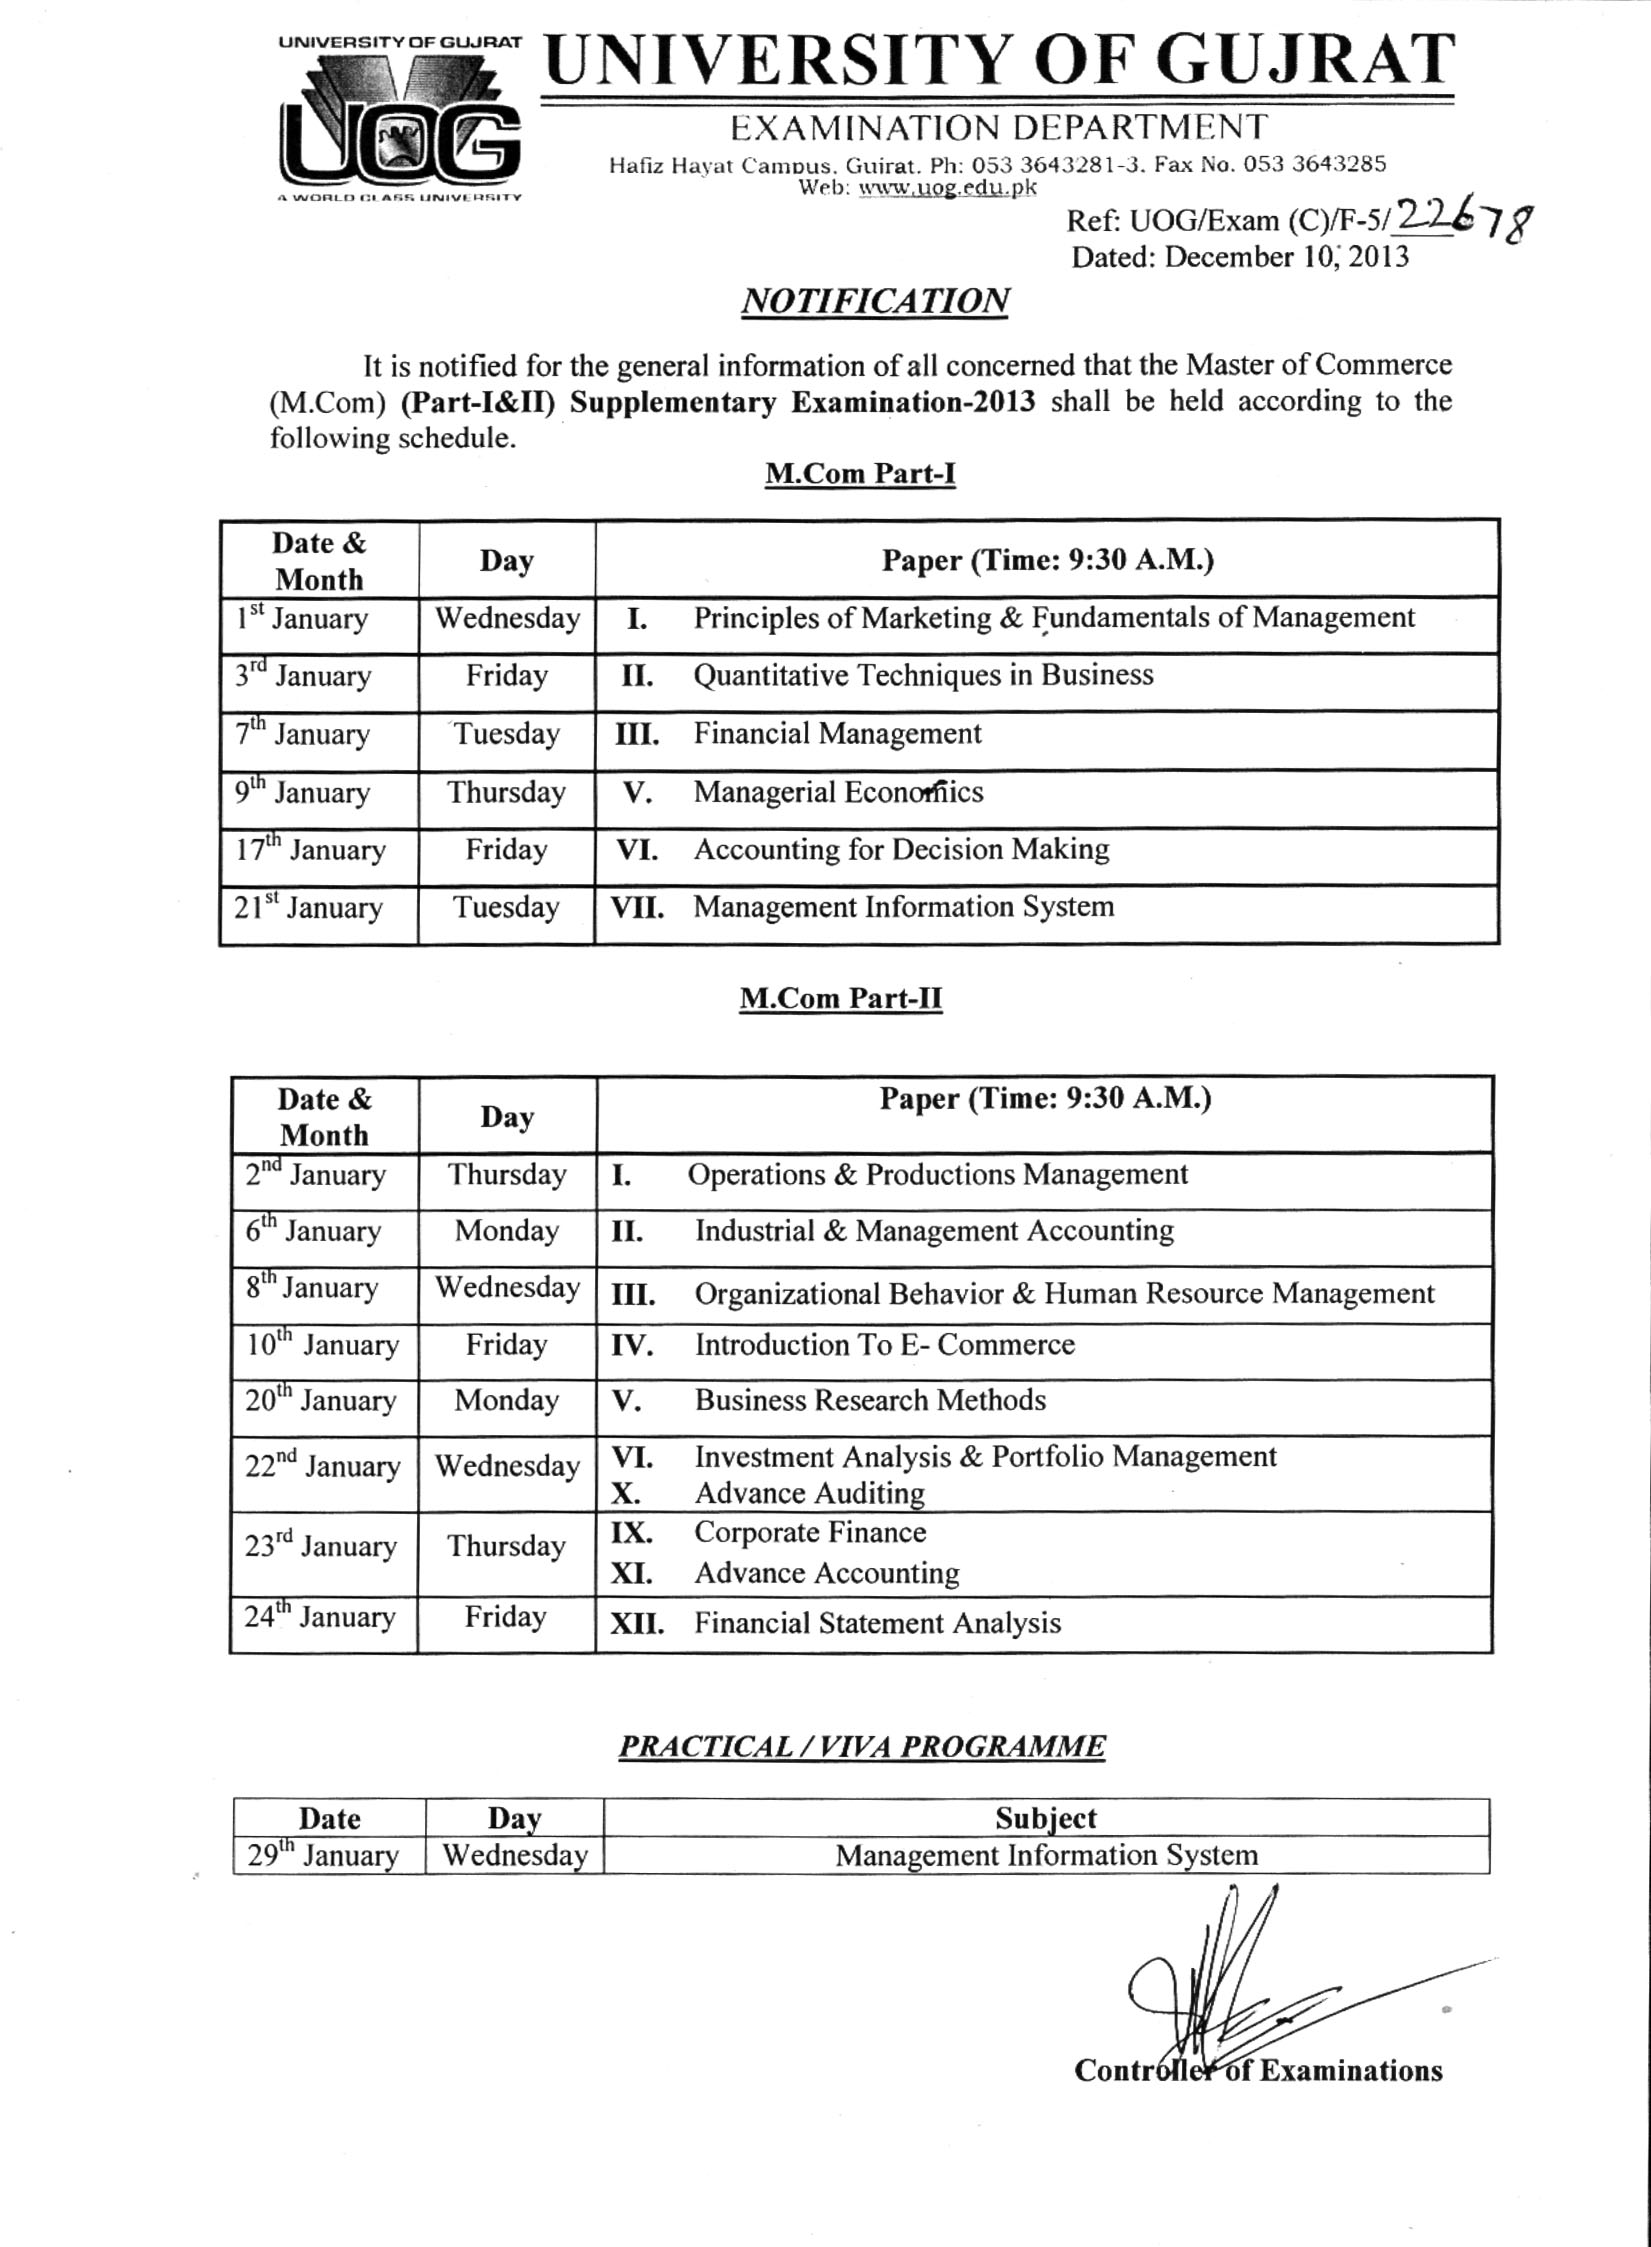 University of Gujrat UOG MA, MSc, M.Com Supplementary Date Sheet 2013